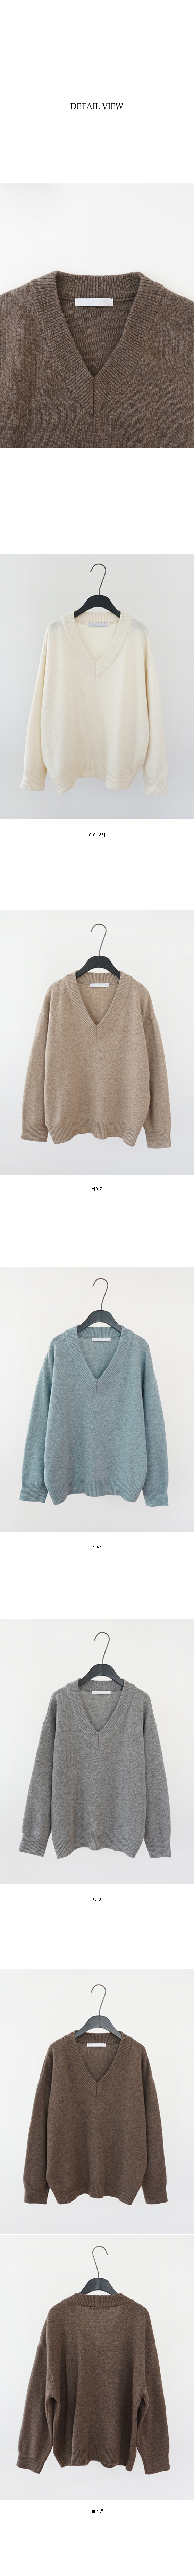 daily loose V-neck knit (5colors)